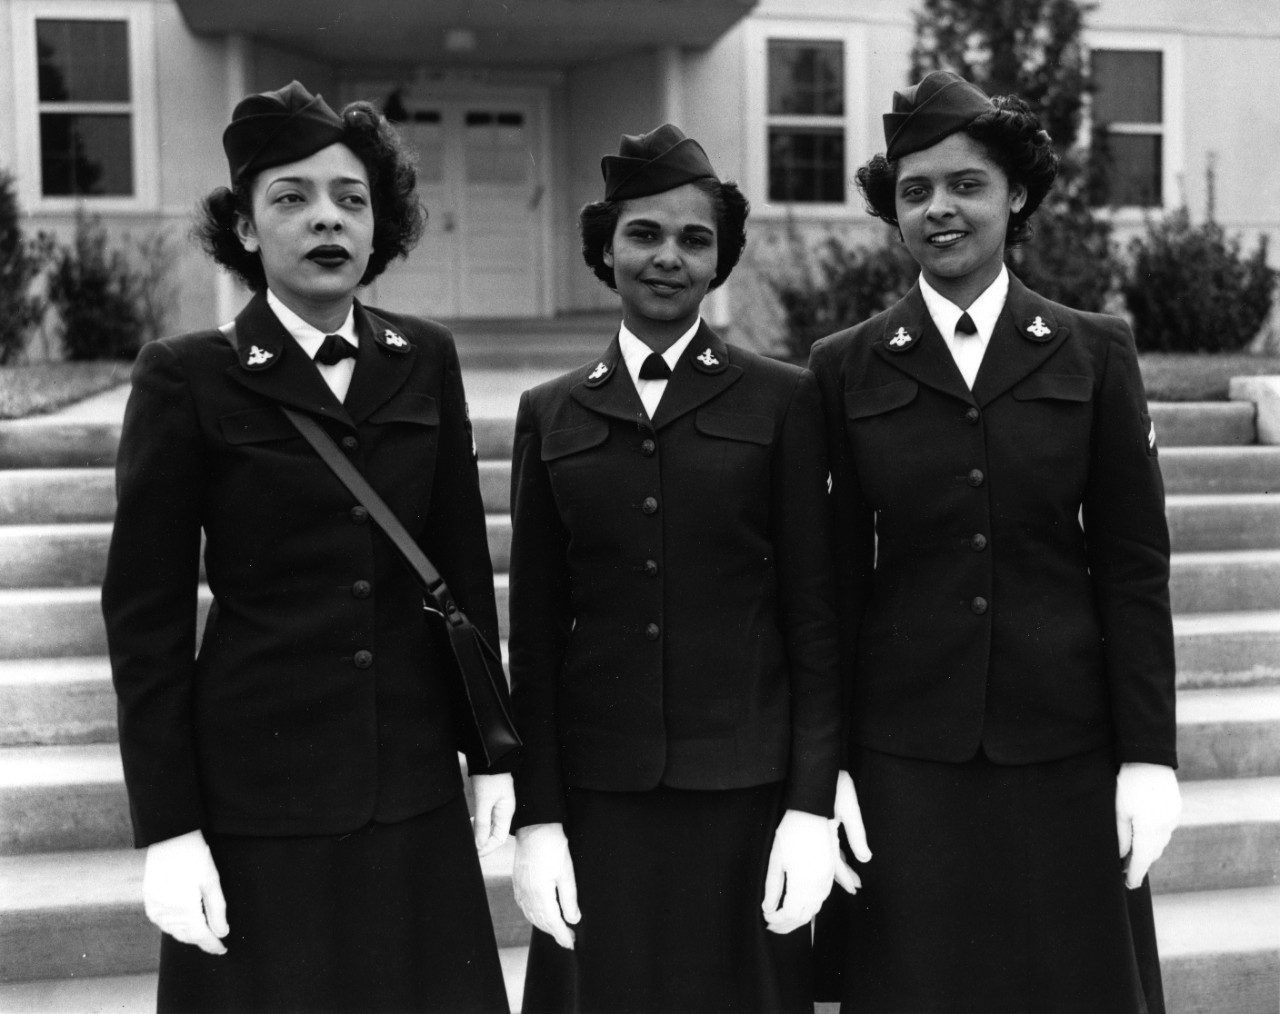 Hospital Apprentices (Left to Right: Ruth C. Isaacs, Katherine Horton, Inez Patterson) are the first African-American WAVES to enter the Hospital Corps School at the National Naval Medical Center, Bethesda, Maryland.